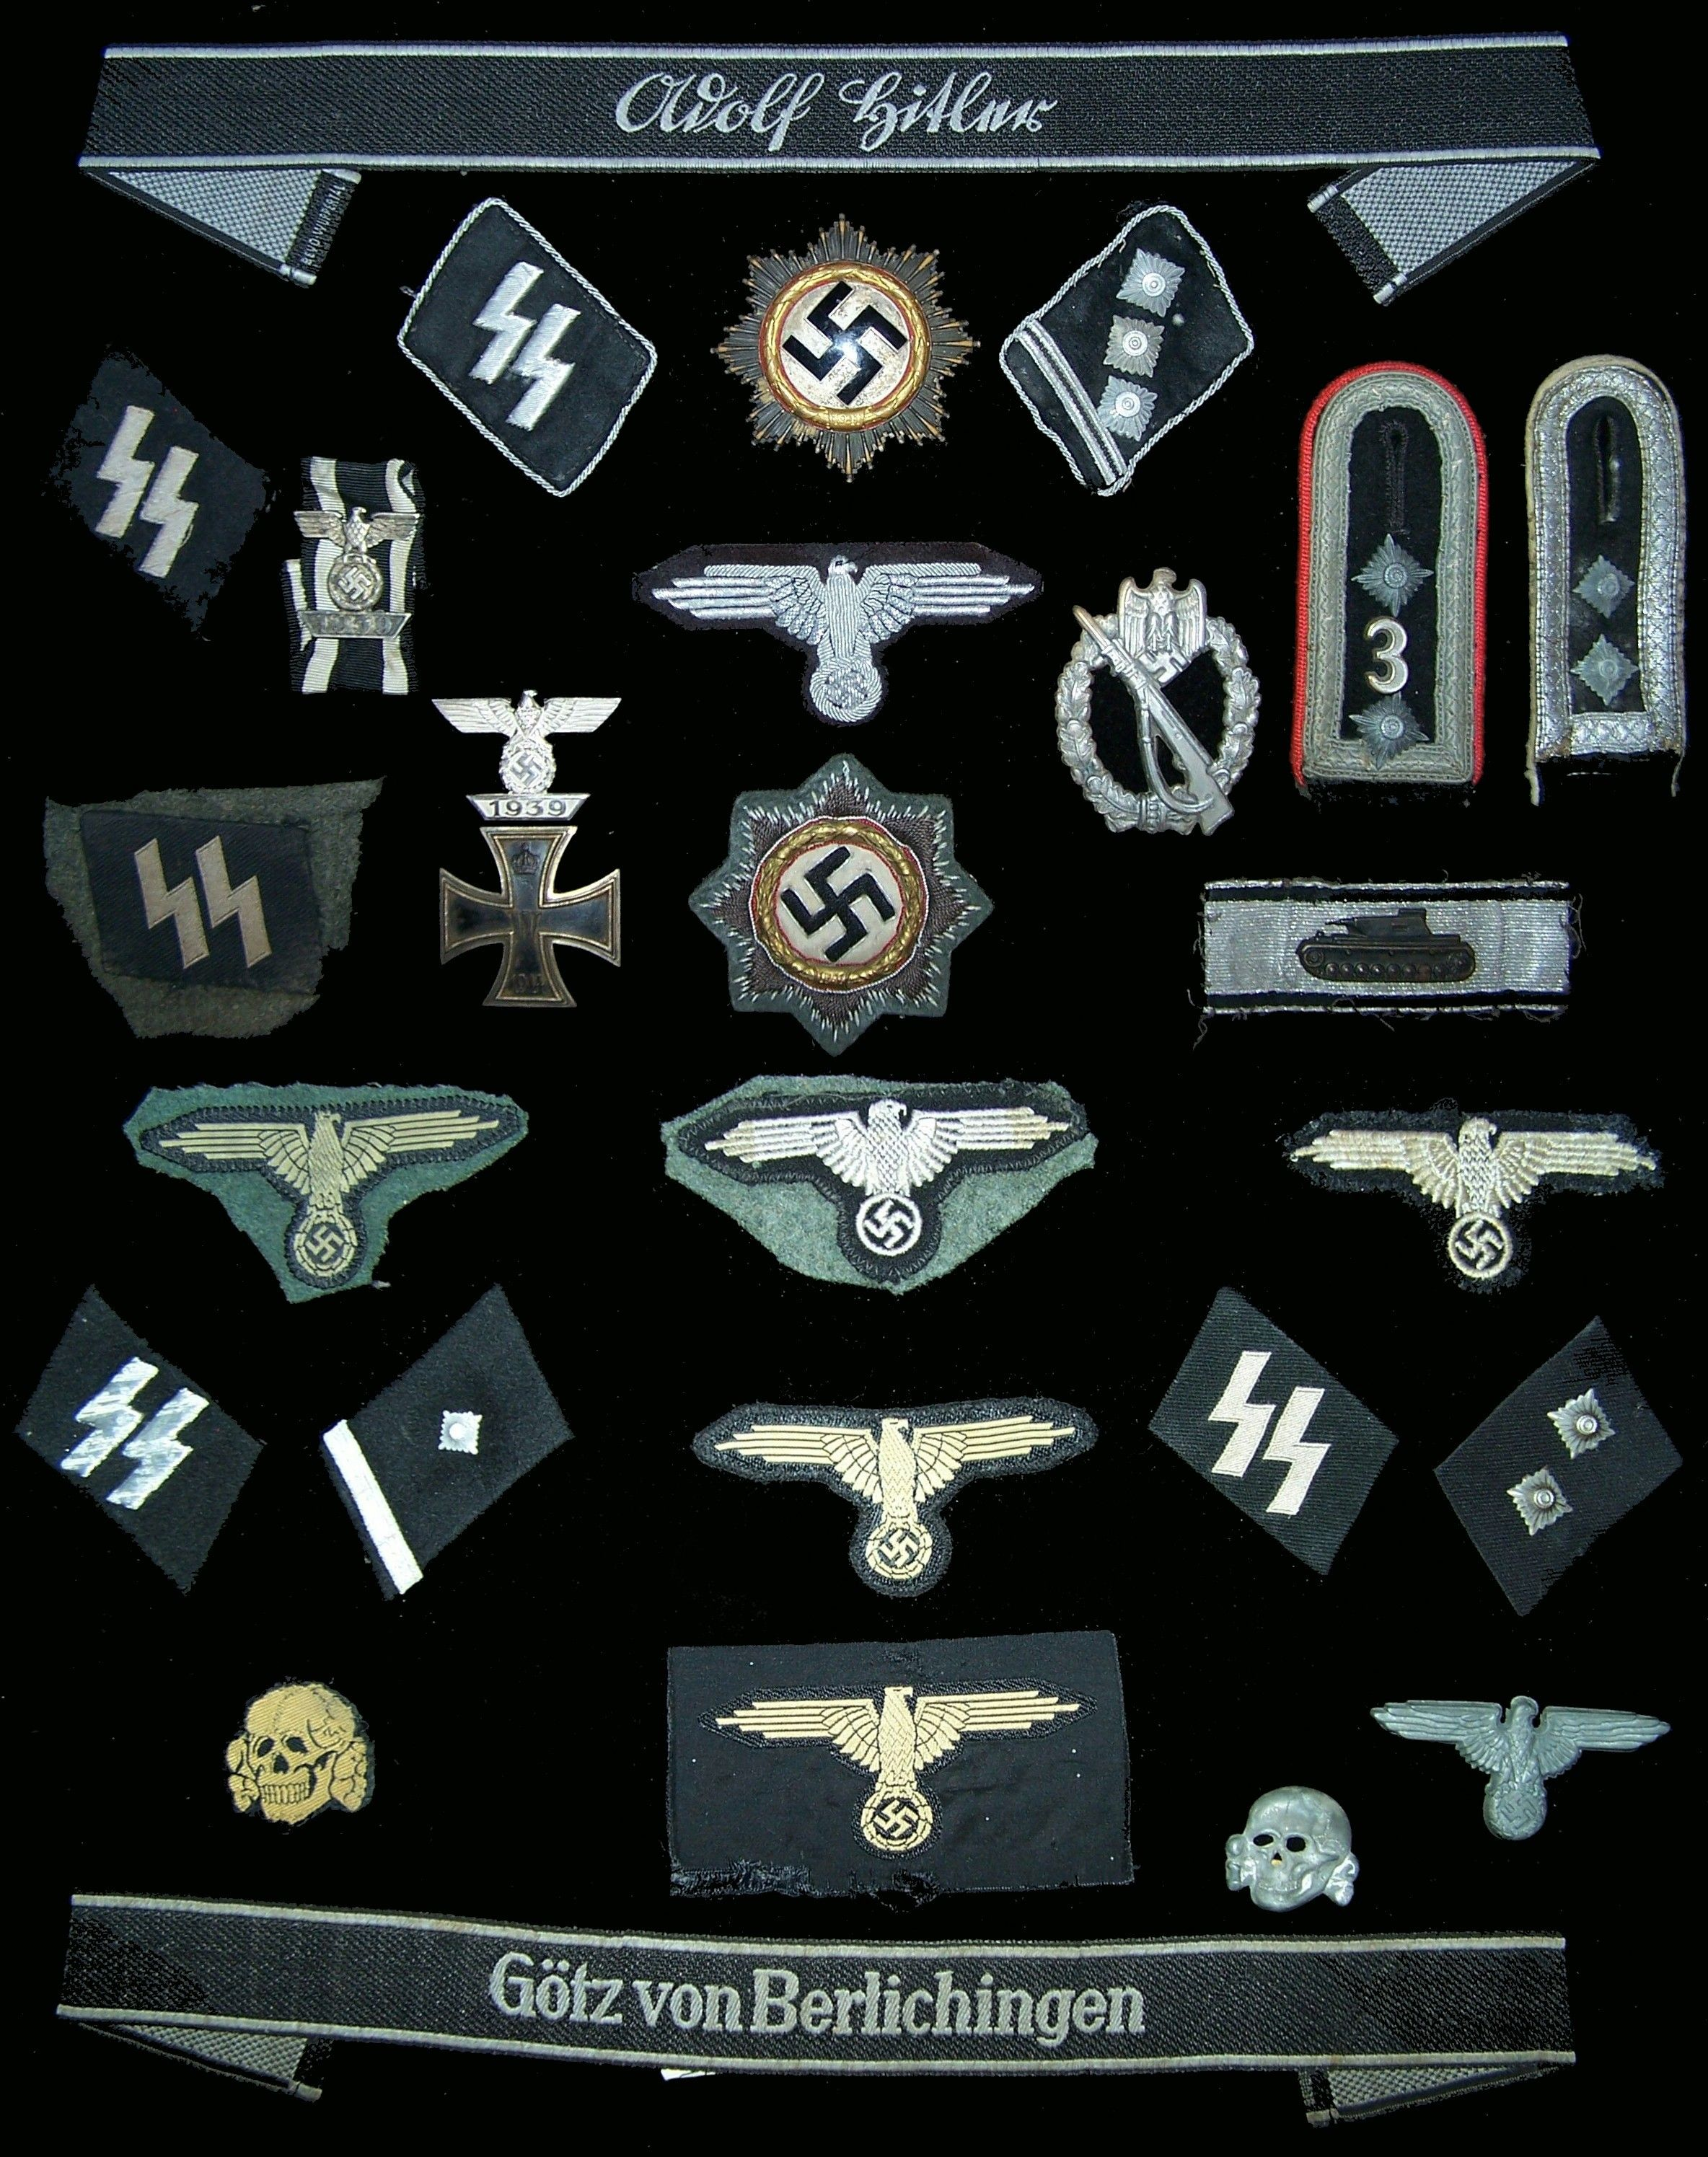 Nazi SS Insignia | This is my WW2 German bunker stove. With and without mess kits.